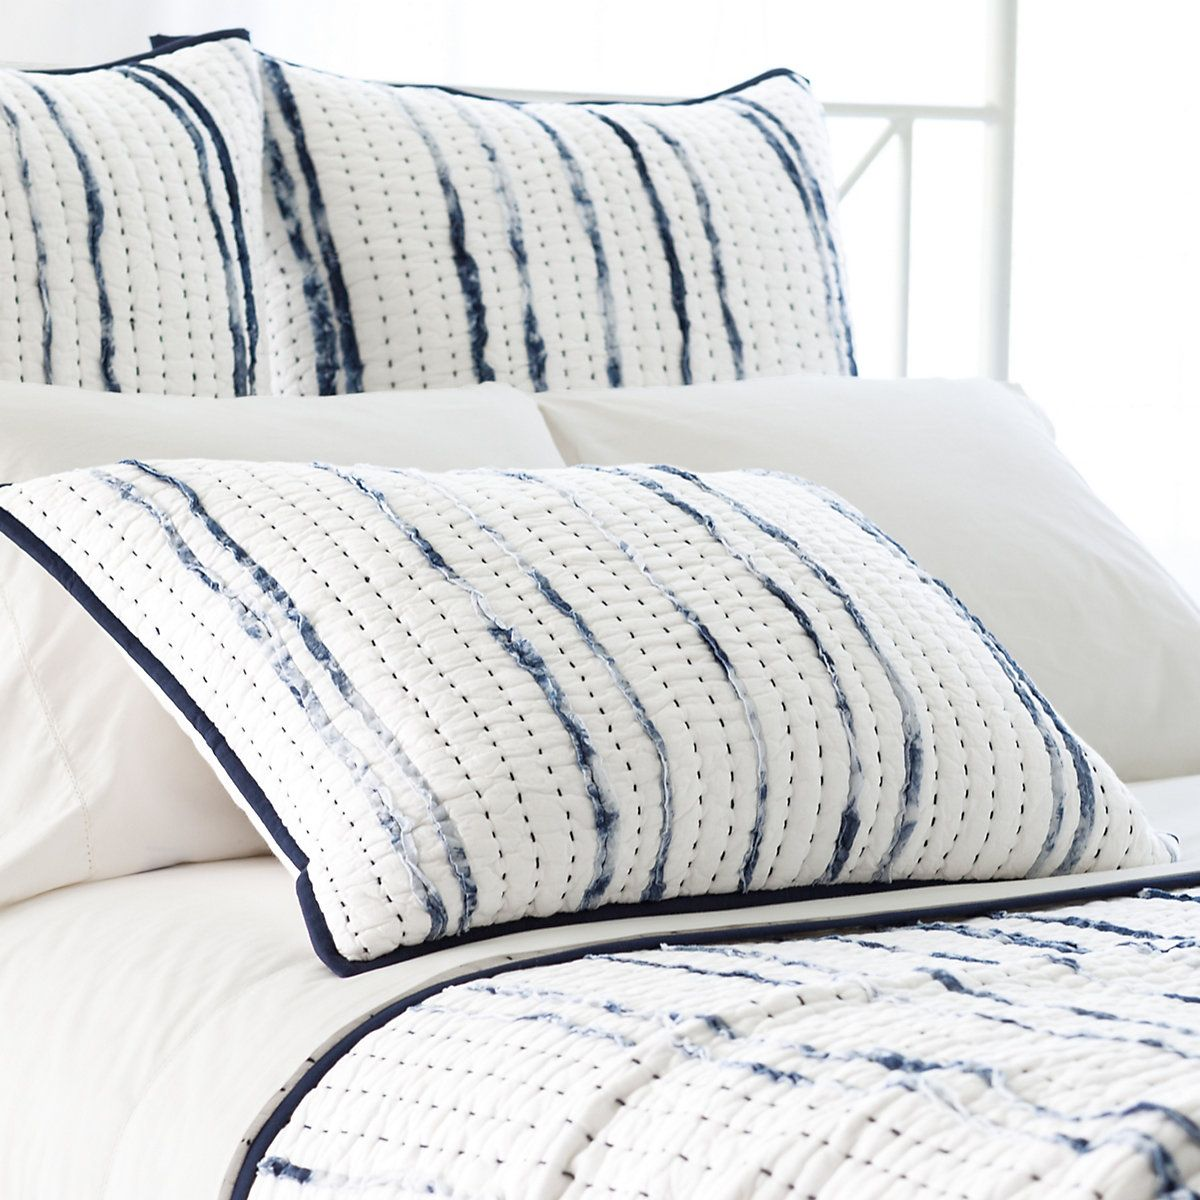 Draftsman Quilted Sham Pine Cone Hill Beige Bed Linen Blue